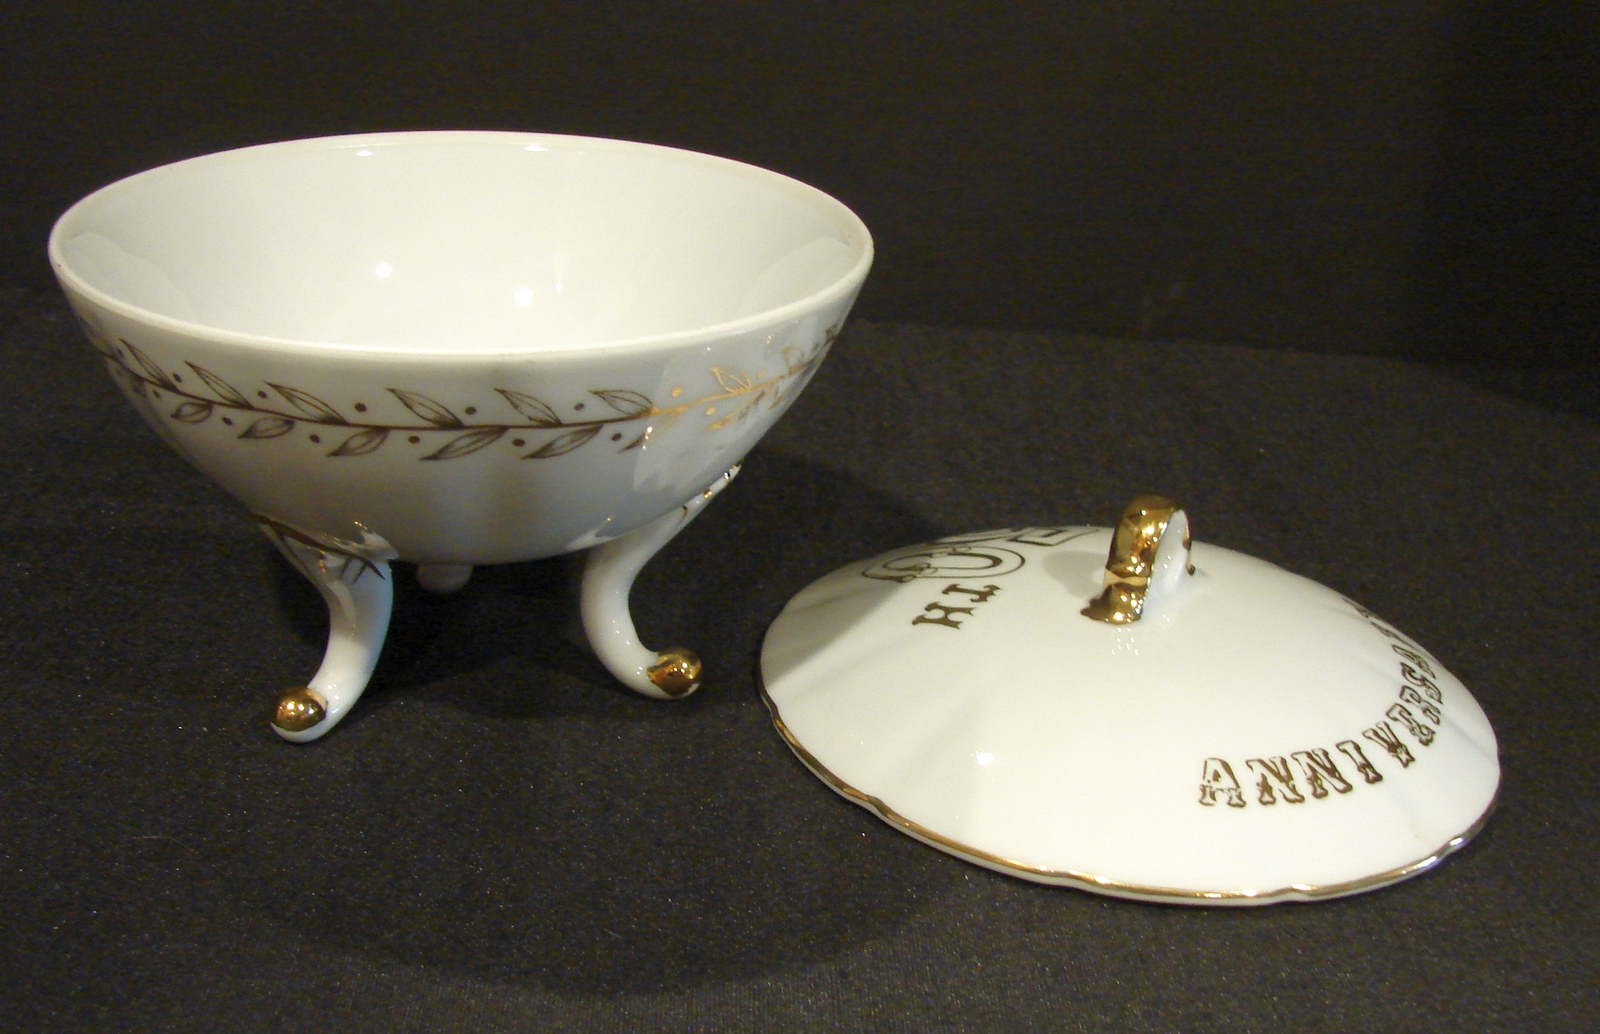 Lefton China 50th Anniversary White-Gold Footed Candy Bowl